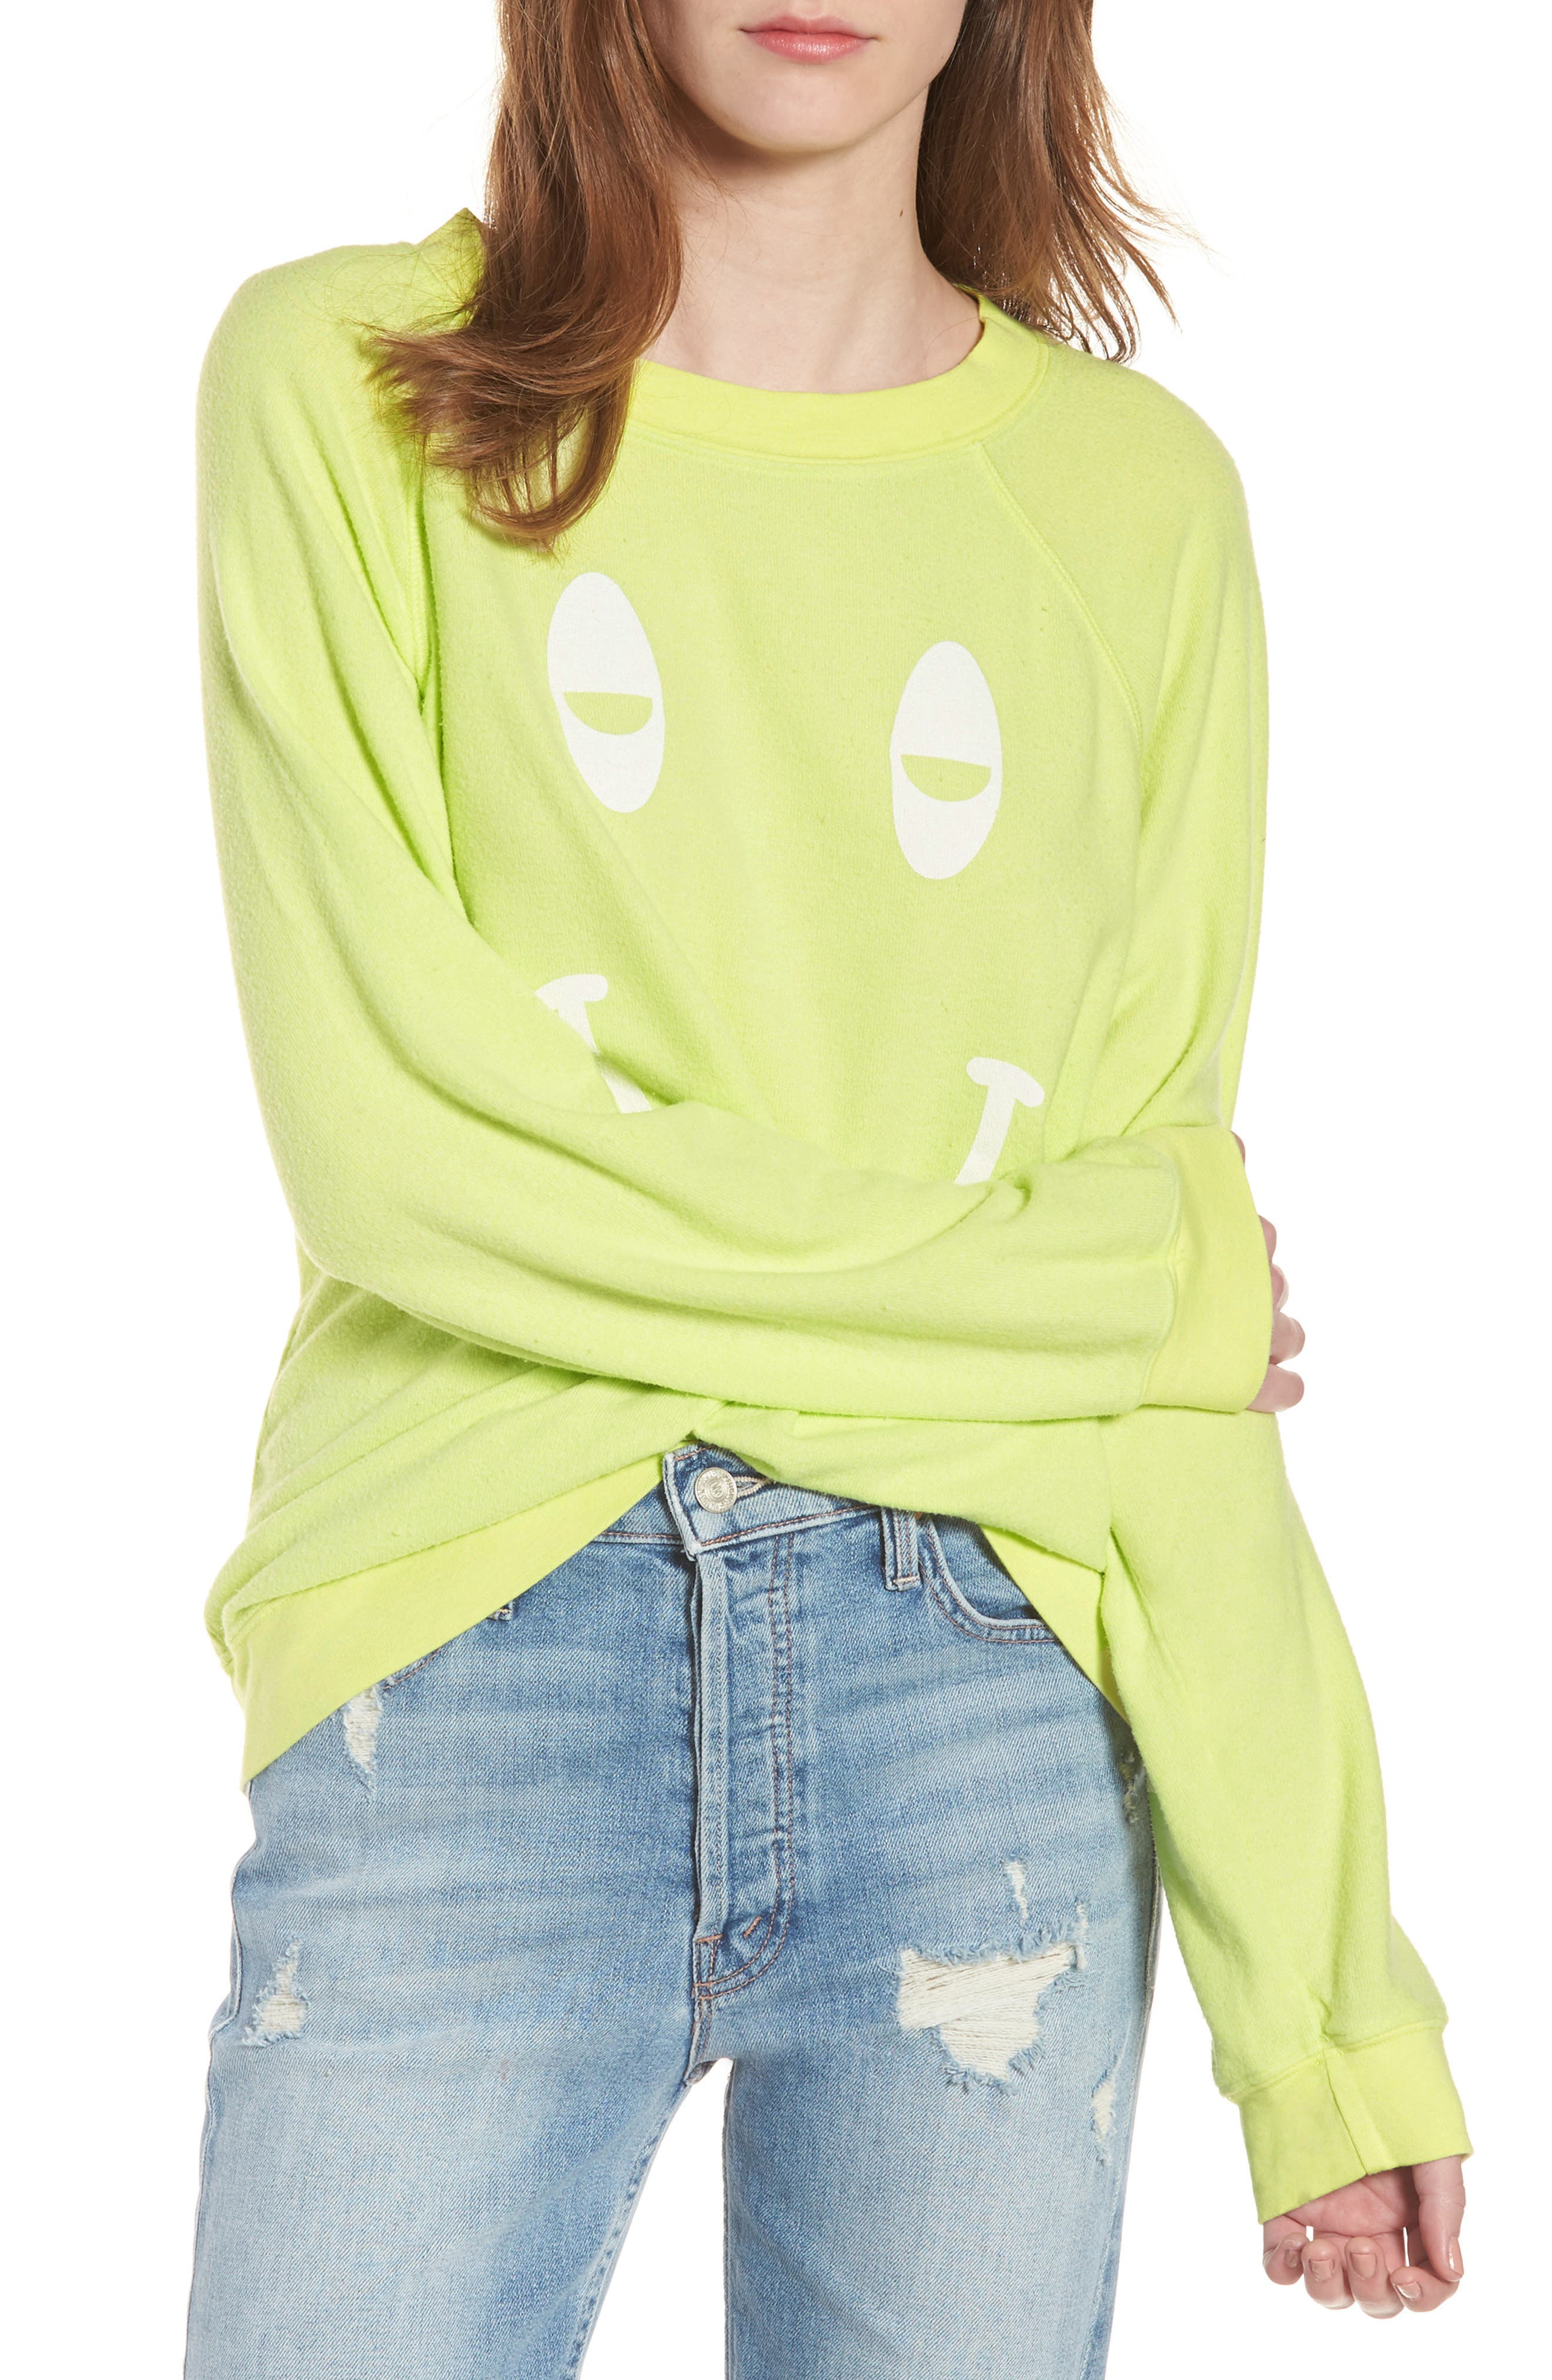 Sleepy Smiley Sommers Sweatshirt,                         Main,                         color,